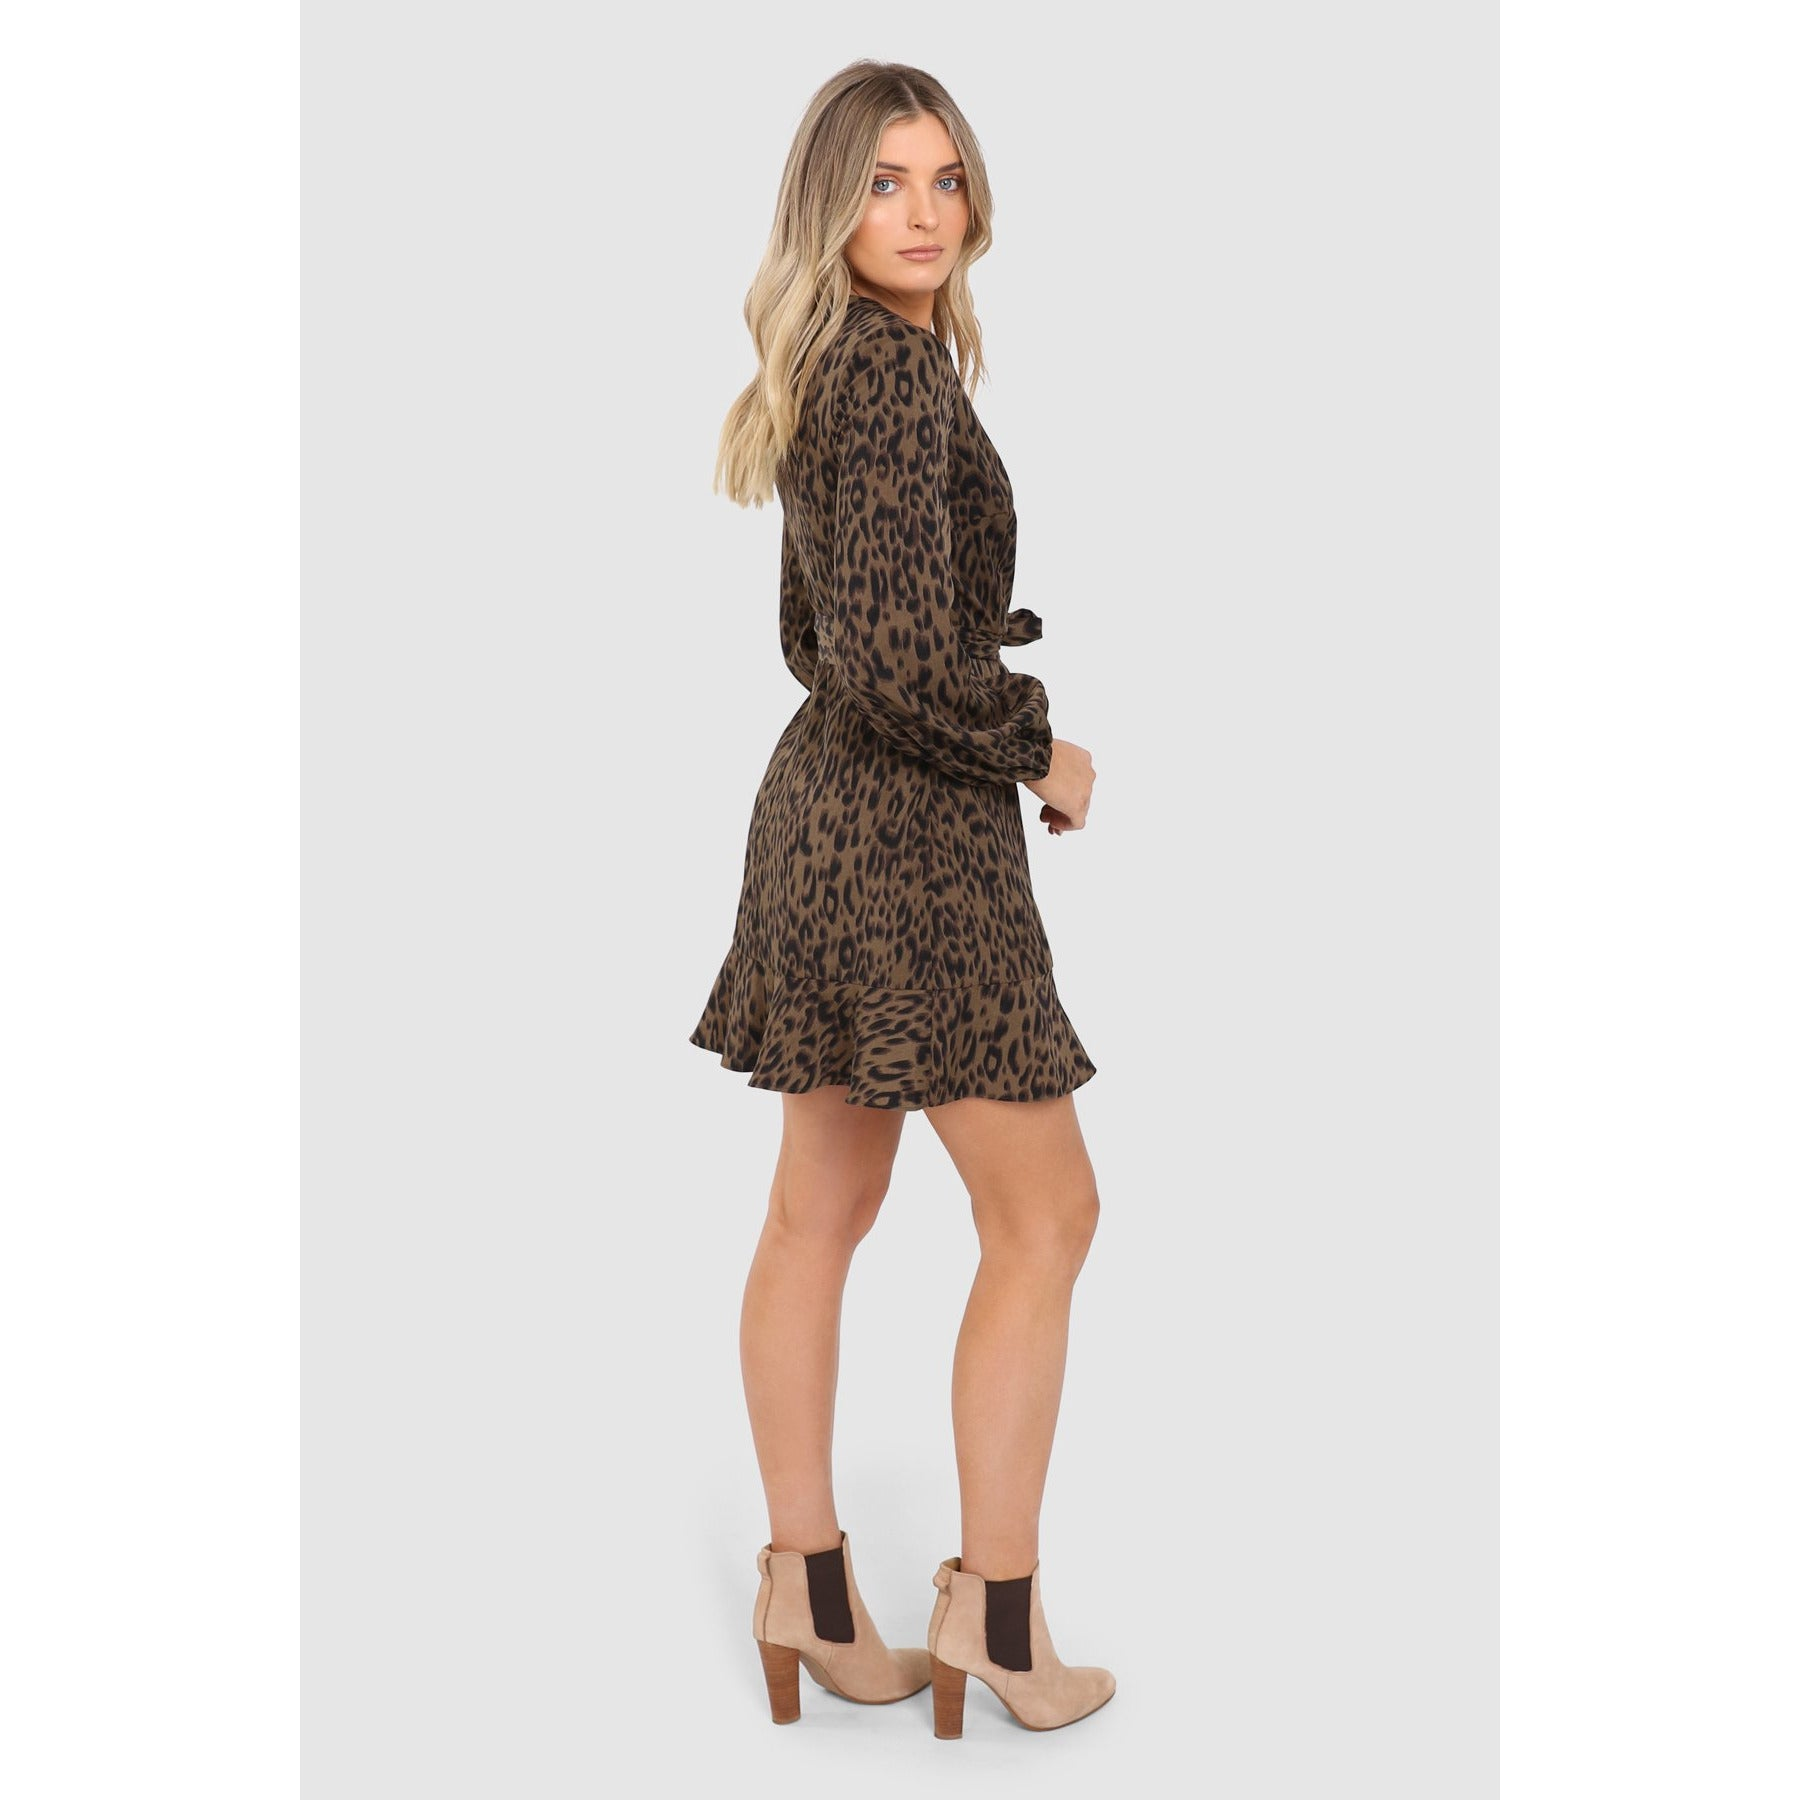 Callie Dress - Khaki